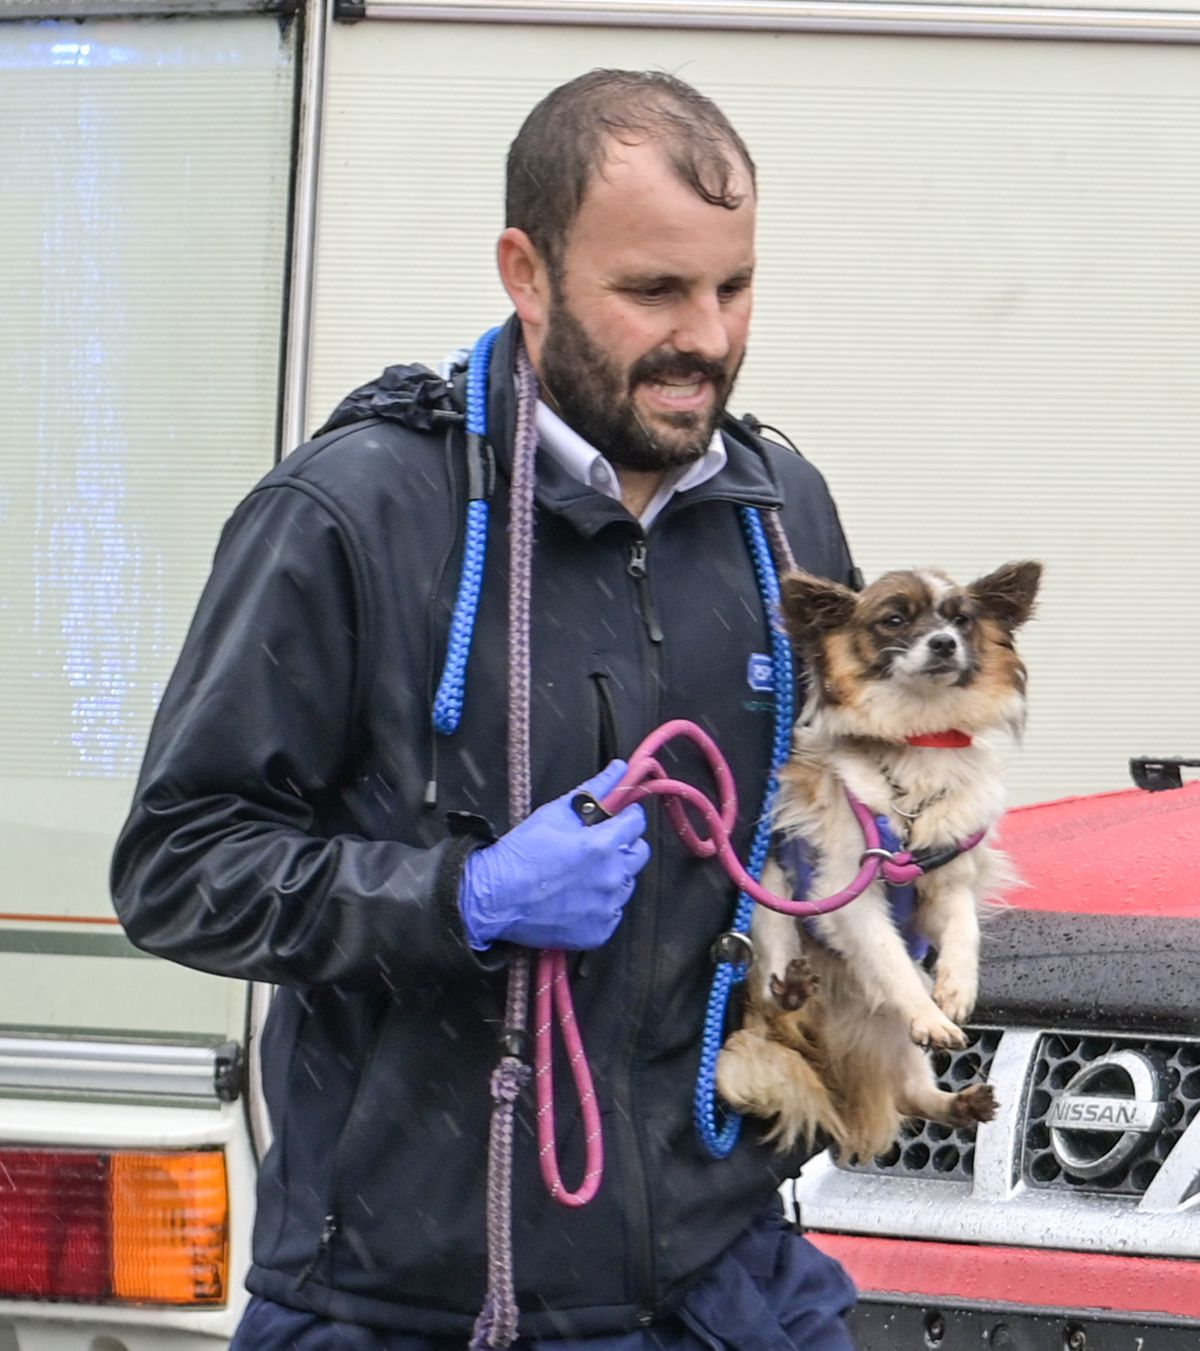 One of the dogs taken from the house. Photo: SnapperSK